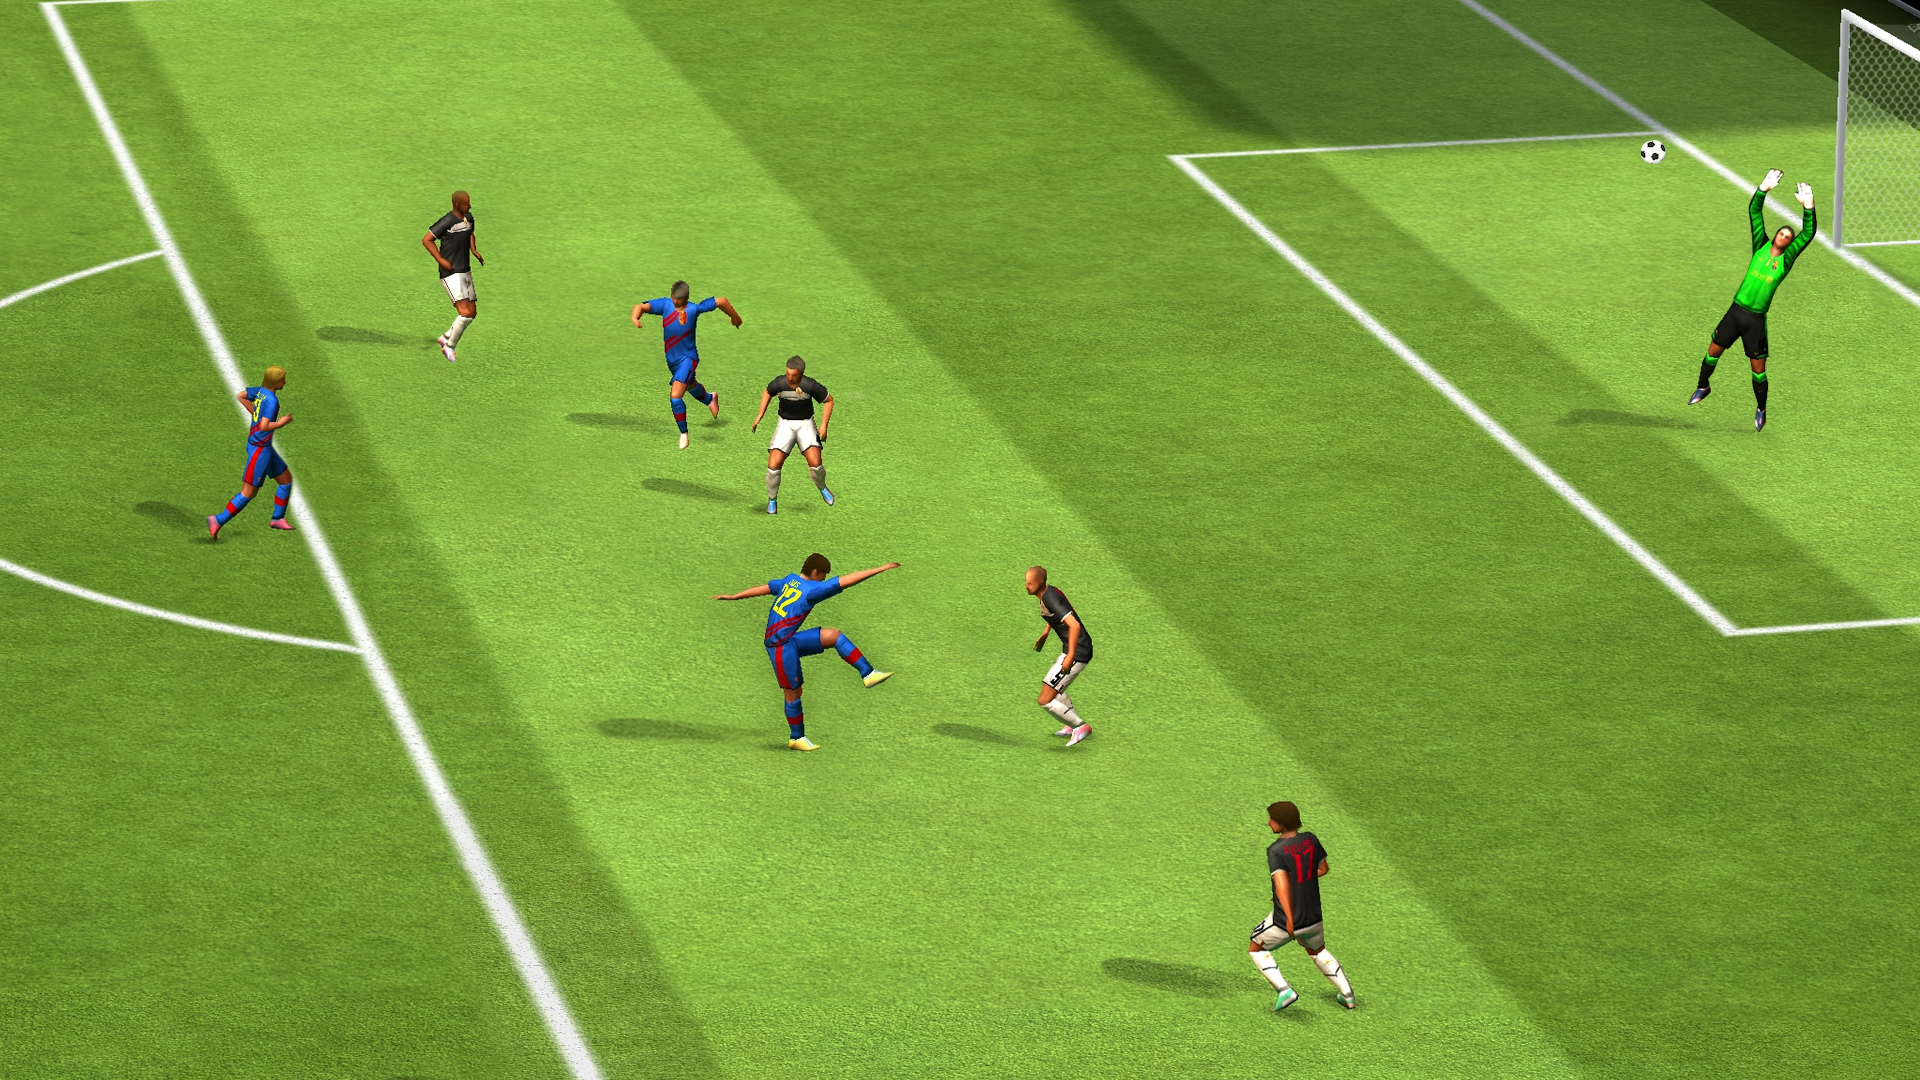 Real Soccer 2013 screenshot #12